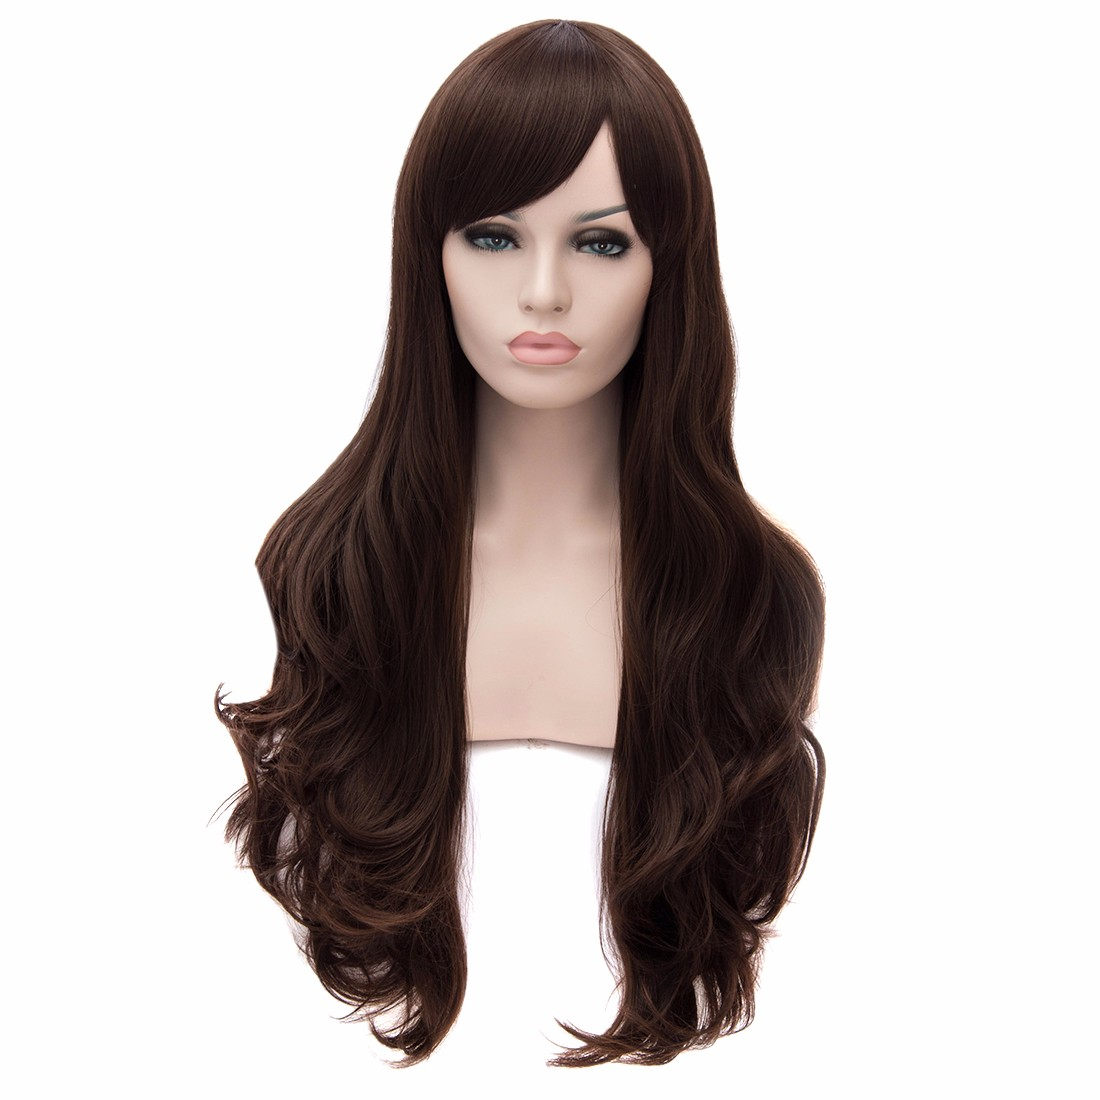 Natural Black Color Long Side Fringe Women Big Wavy Curly Fashion Full Wigs<br><br>Aliexpress